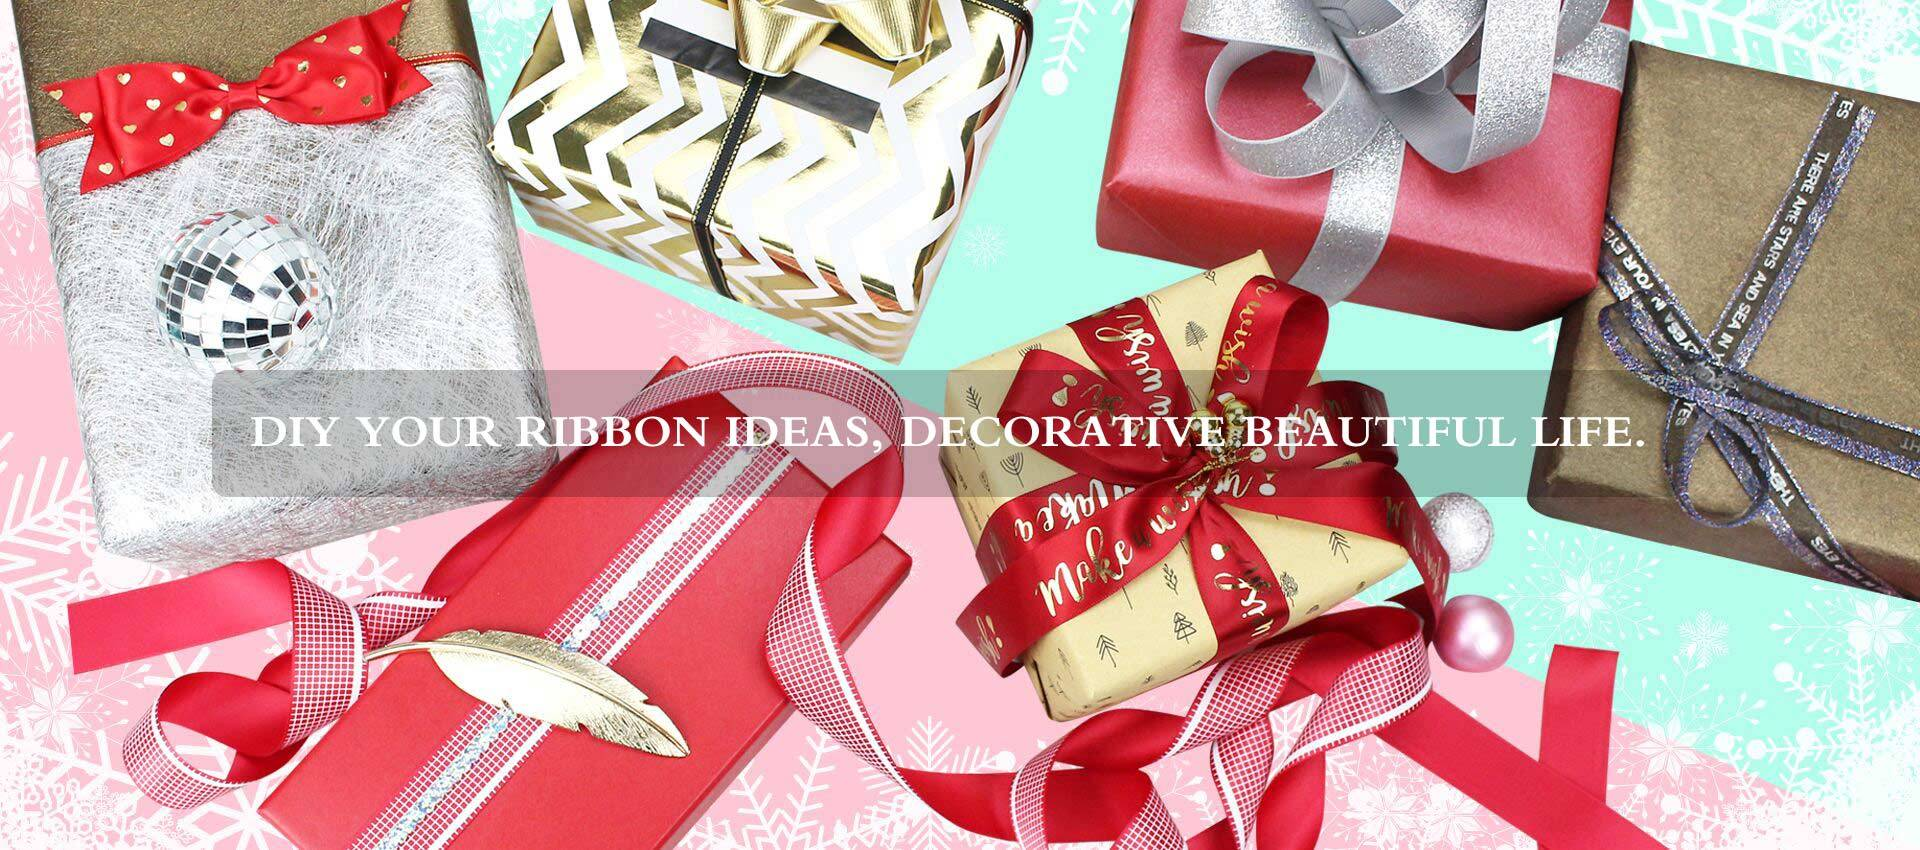 DIY Your Ribbon Ideas Decorative Beautiful Life.